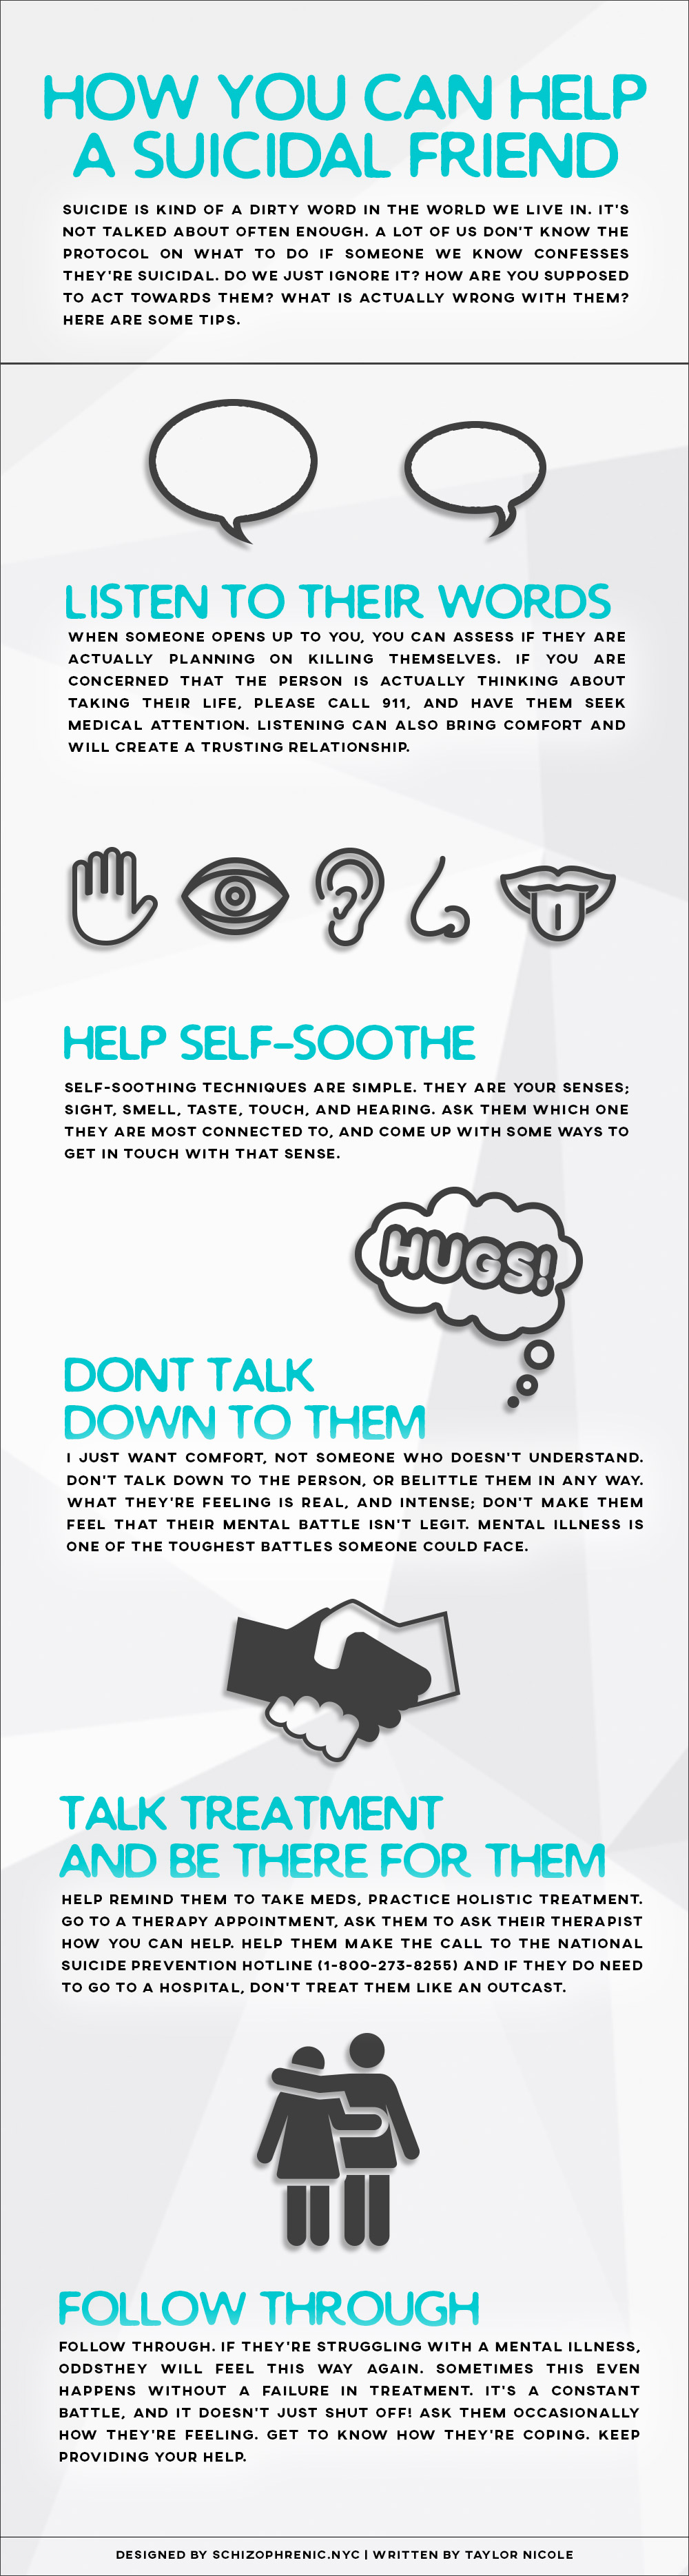 how you can help a suicidal friend infographic | schizophrenic.nyc